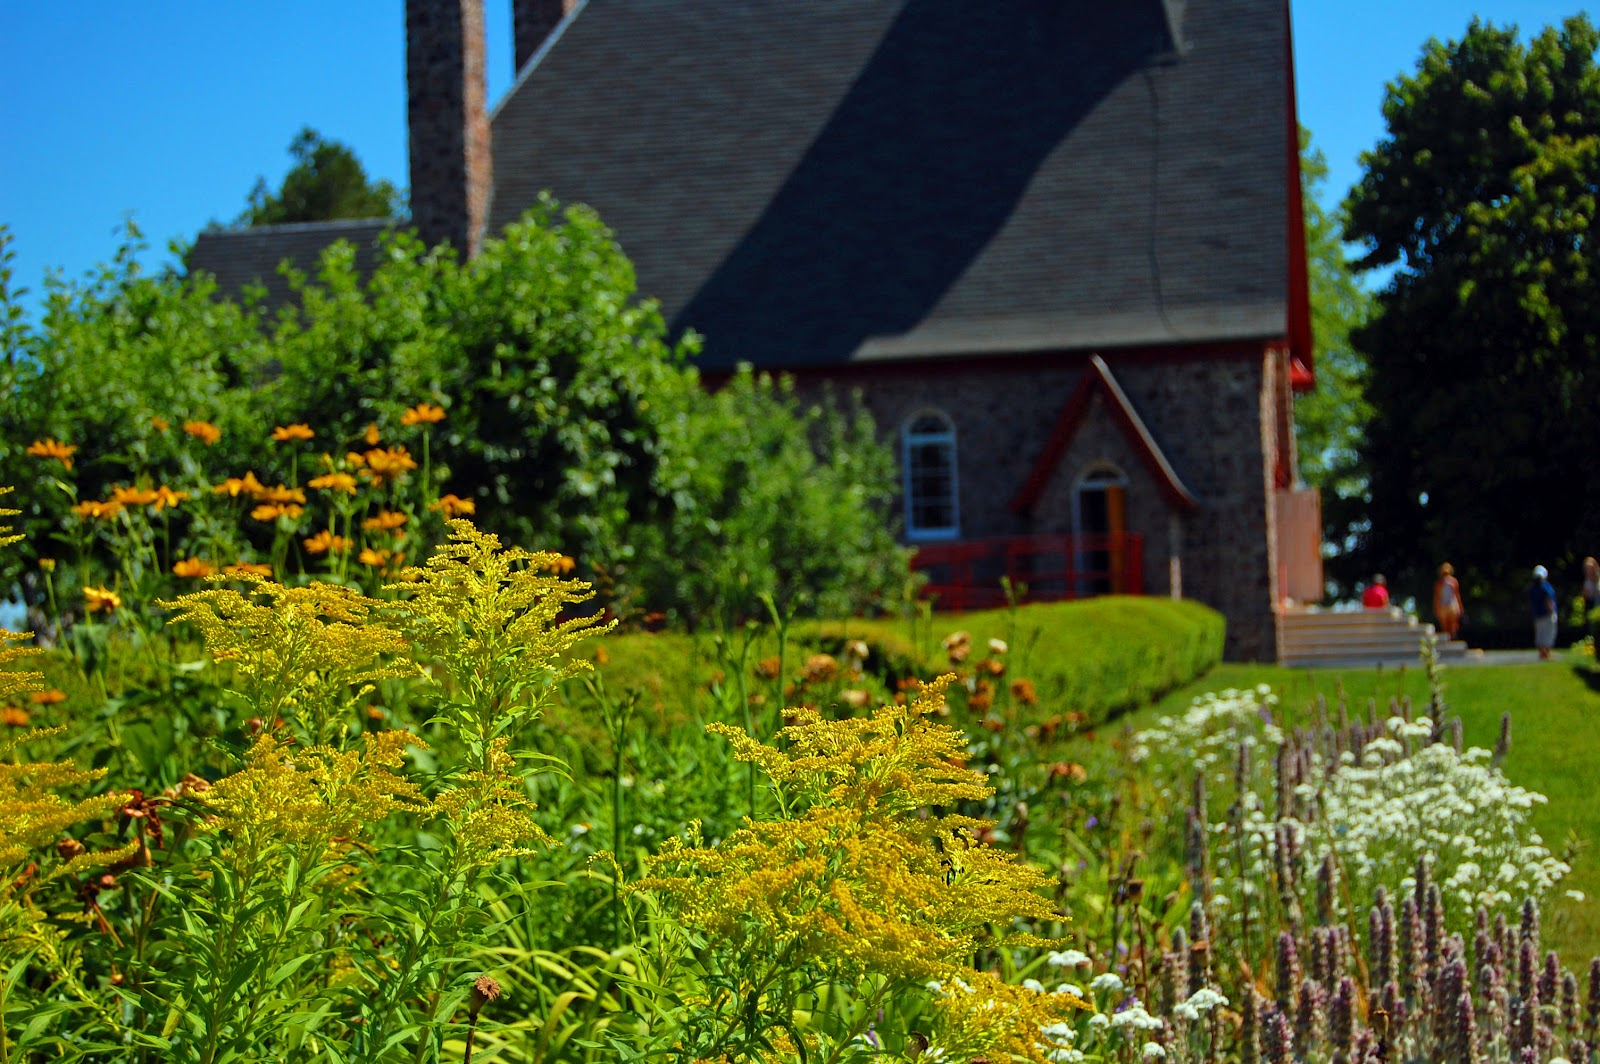 Truro (NS) Canada  city images : We visited the National Park at Grand Pre which included this ...